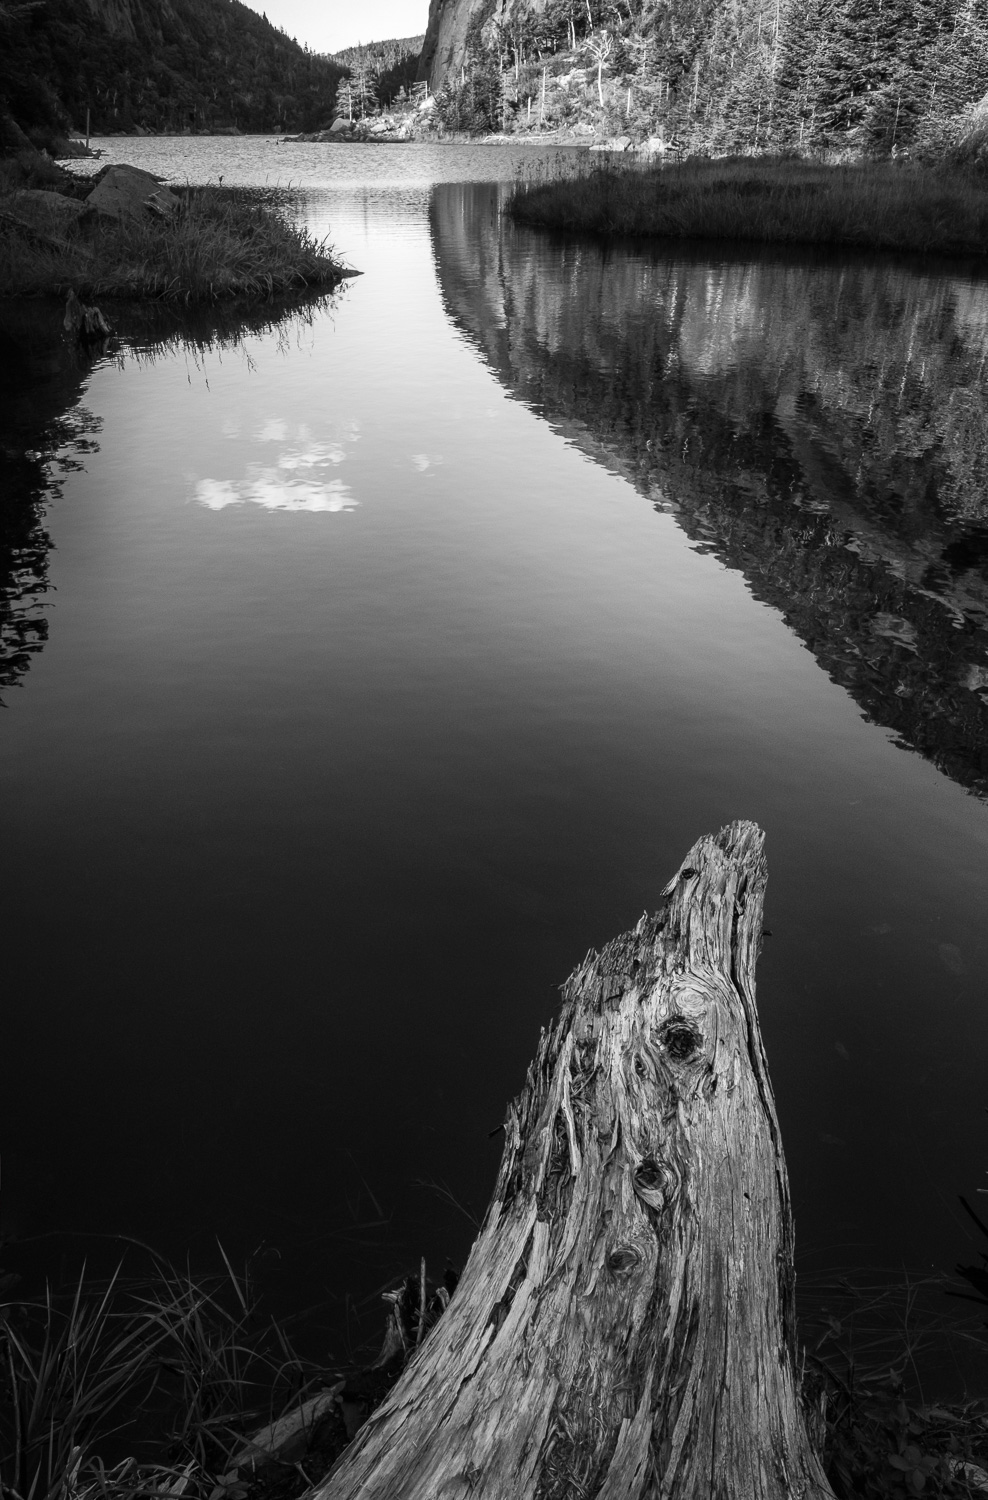 At this end of the lake, there is plenty of debris, mostly logs, that has built up and makes for some interesting foregrounds. In this case, I switched to a vertical and used this large branch to lead you into the photograph. Converting to monochrome emphasizes the contrast between the warm wood and the cool lake.  Fujifilm X-Pro2 with a 16mm lens, 1/60 @ f16, ISO 800, Exp. Comp. -0.3.